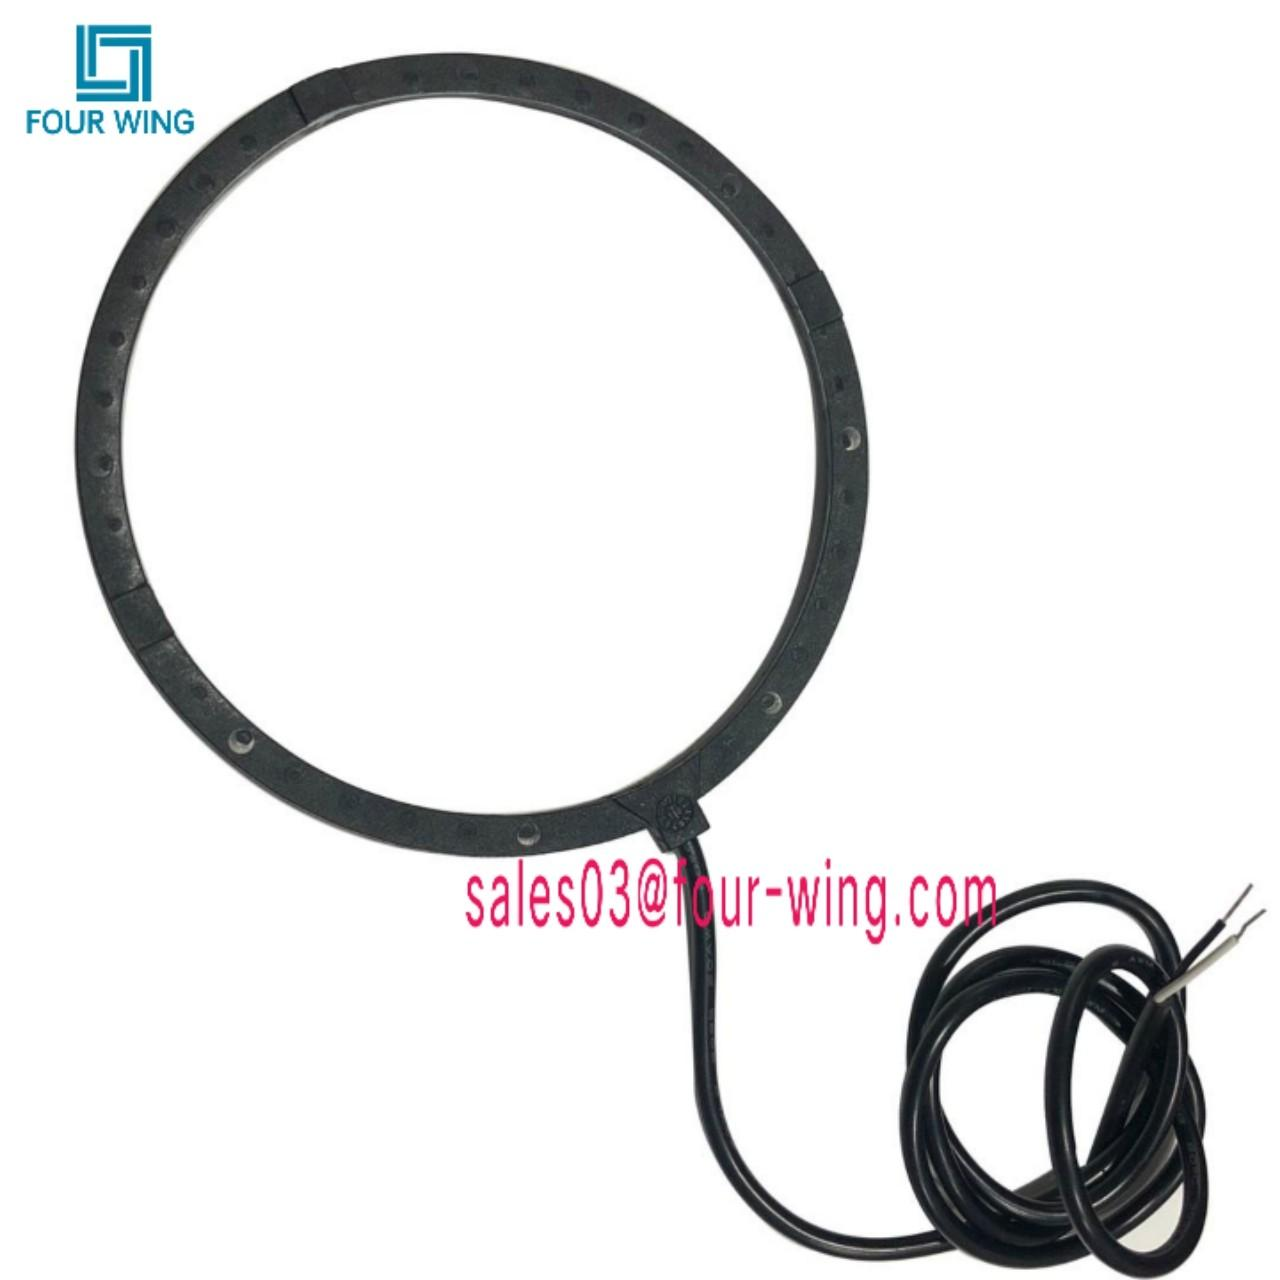 China Factory RFID Reader molded coil wireless charger coil passive tag RFID reader coil plastci molded coil for sale